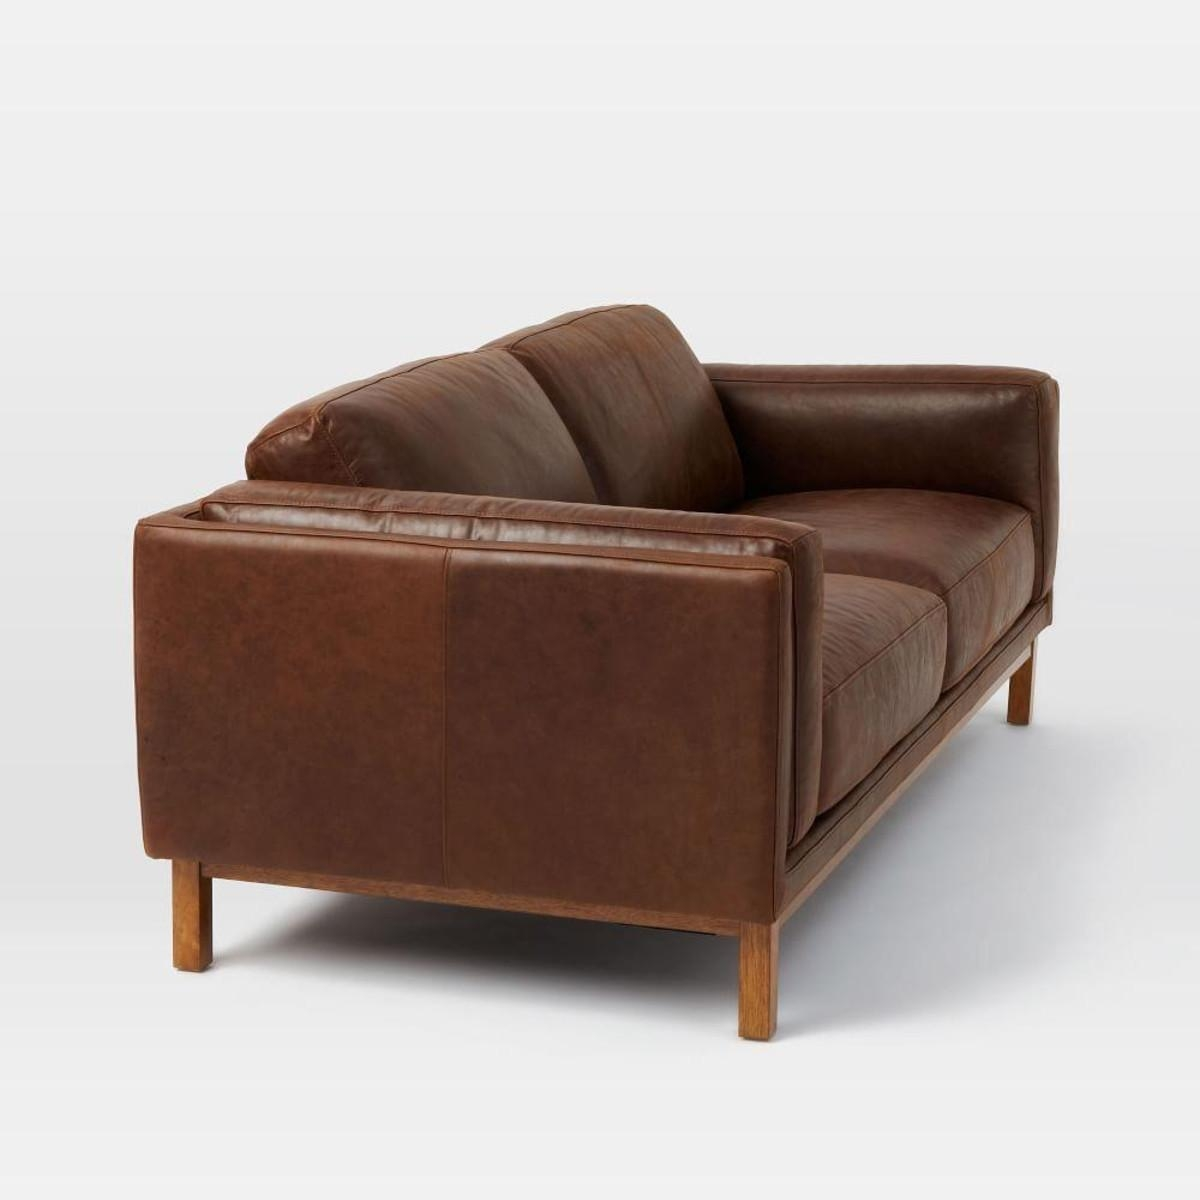 Aniline Leather Sofas John Lewis Halo Groucho Small Aniline Throughout Aniline Leather Sofas (Image 4 of 20)